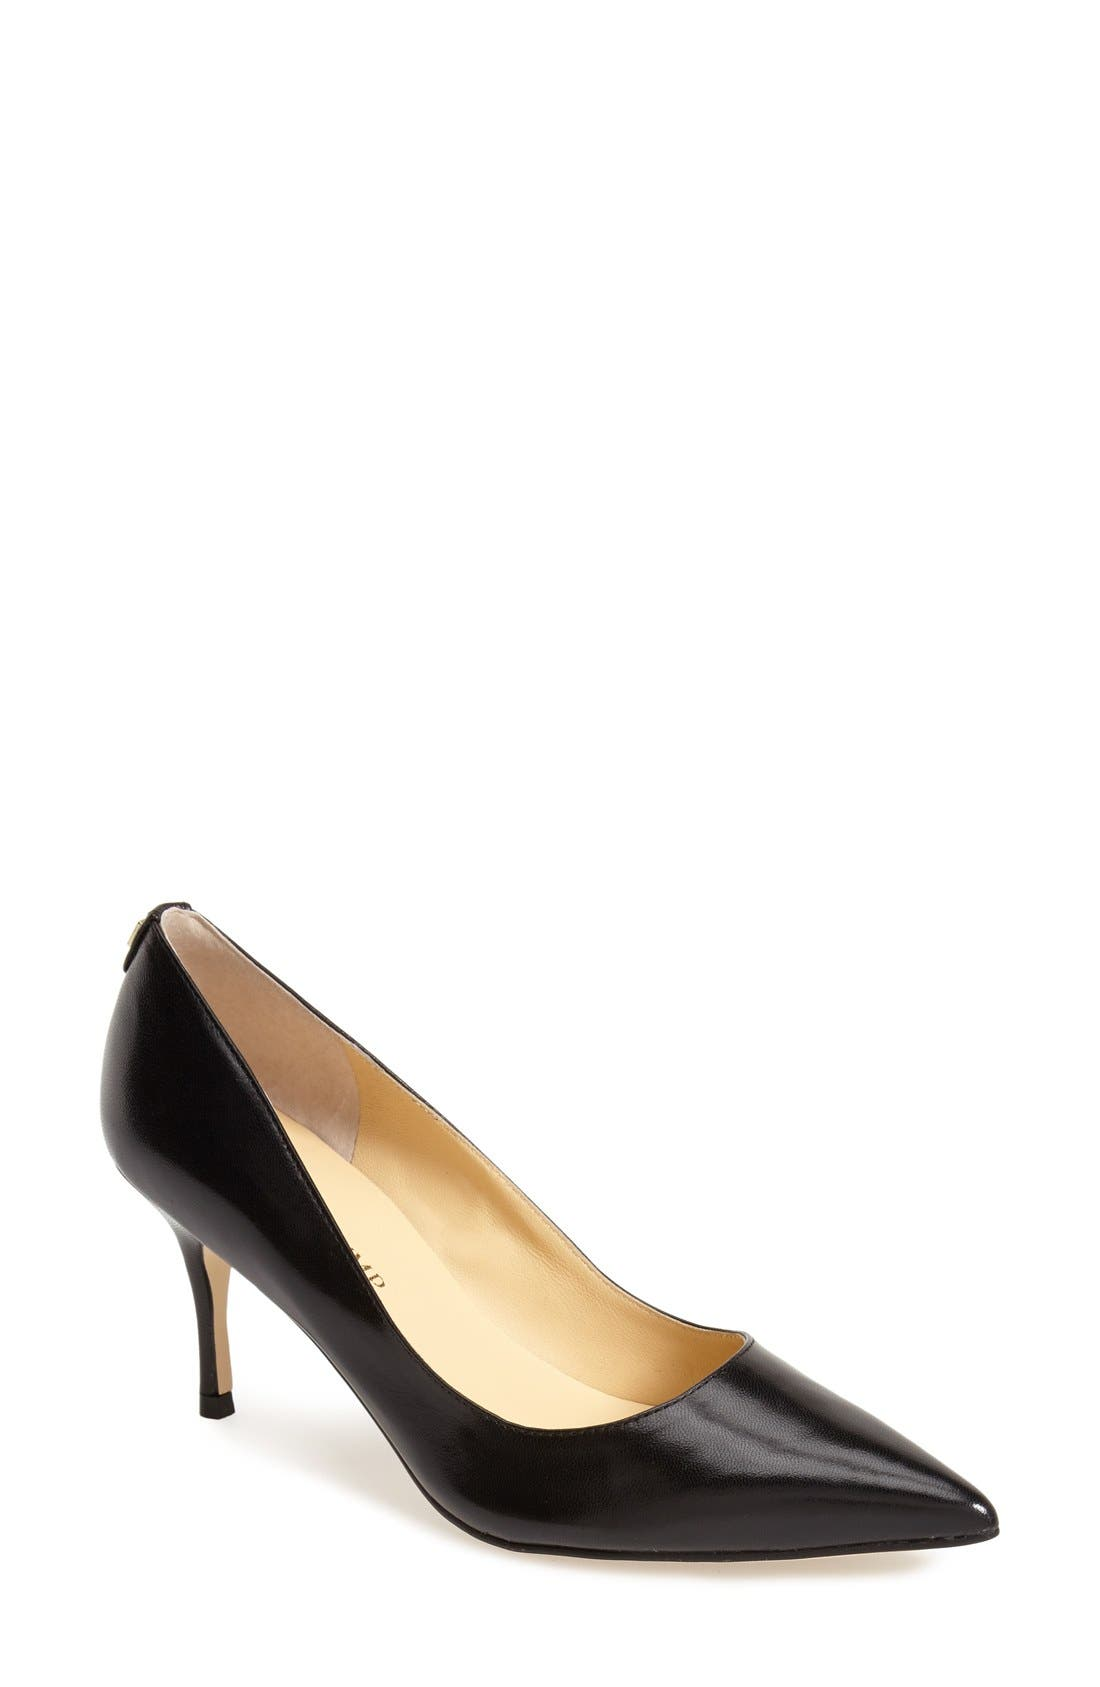 Alternate Image 1 Selected - Ivanka Trump 'Boni' Pointy Toe Pump (Women)